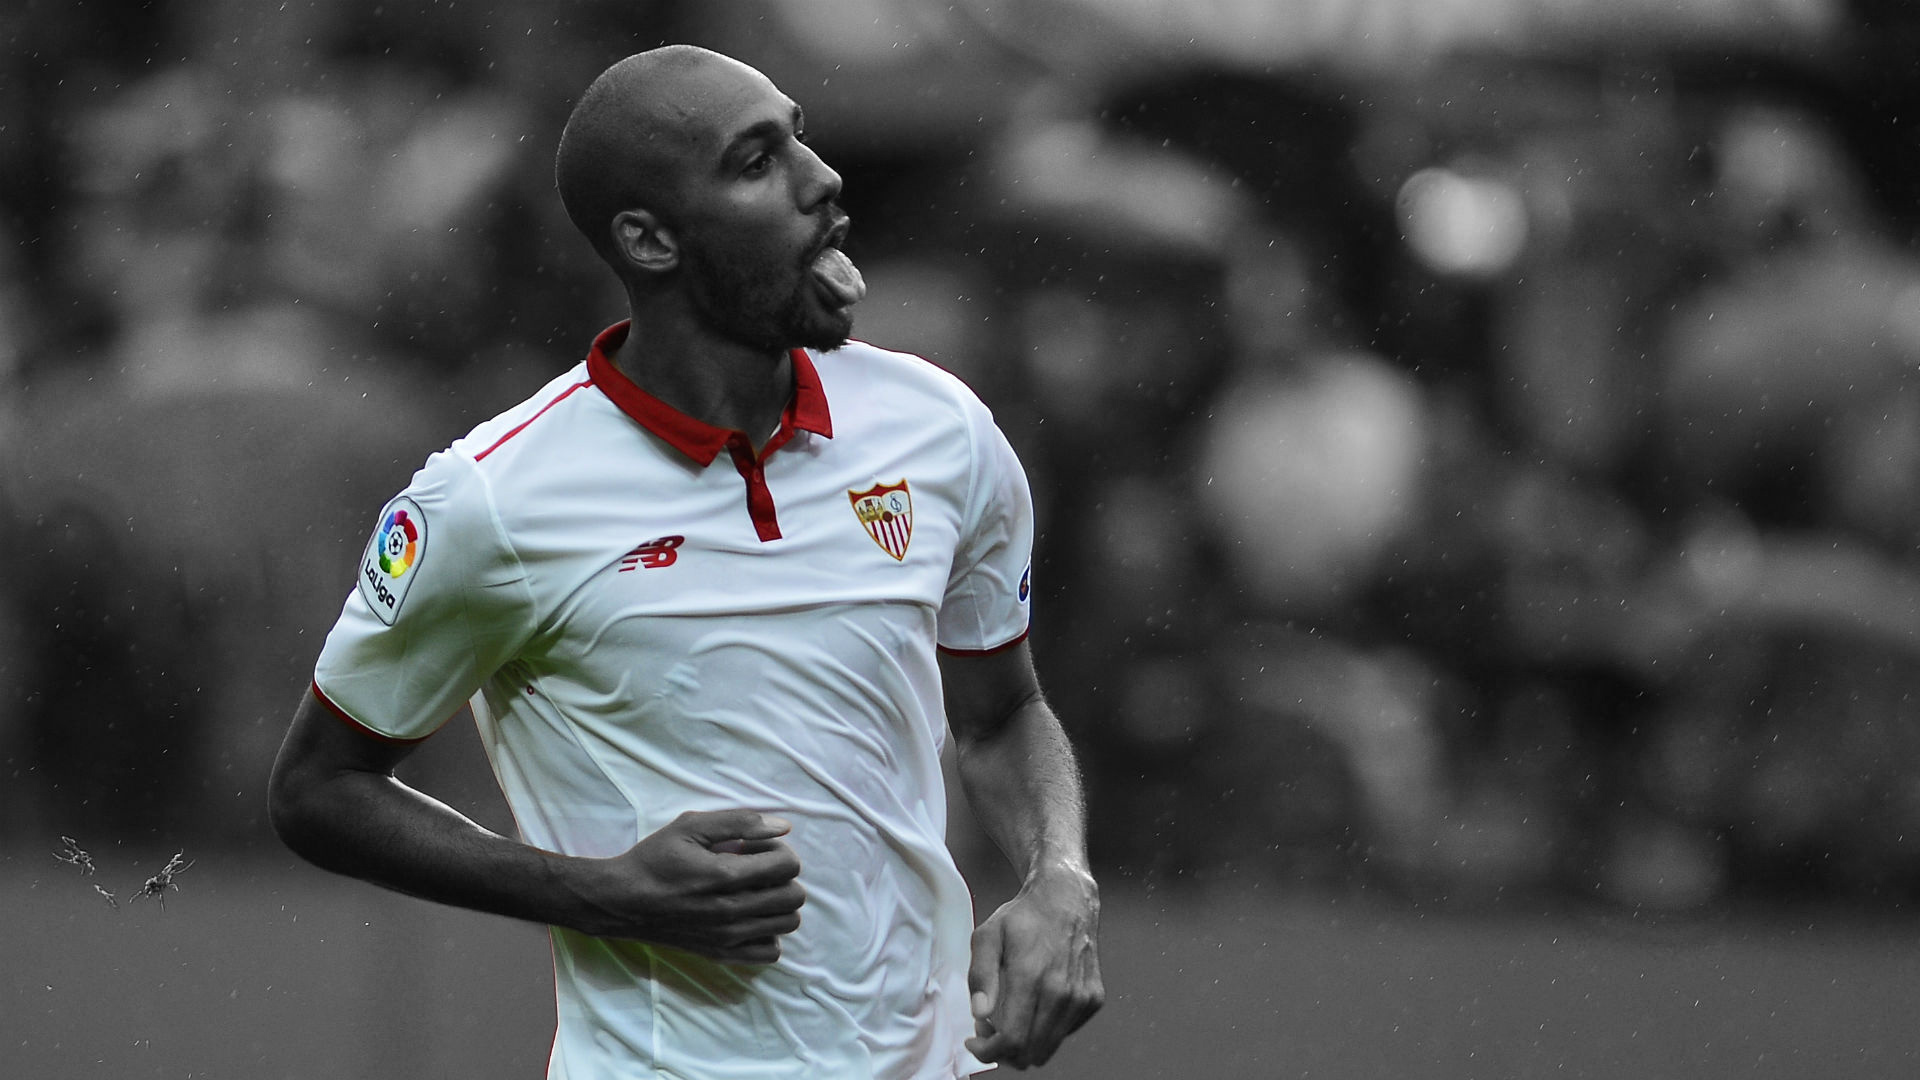 Arsenal Consider Splashing Out £25m On N'Zonzi